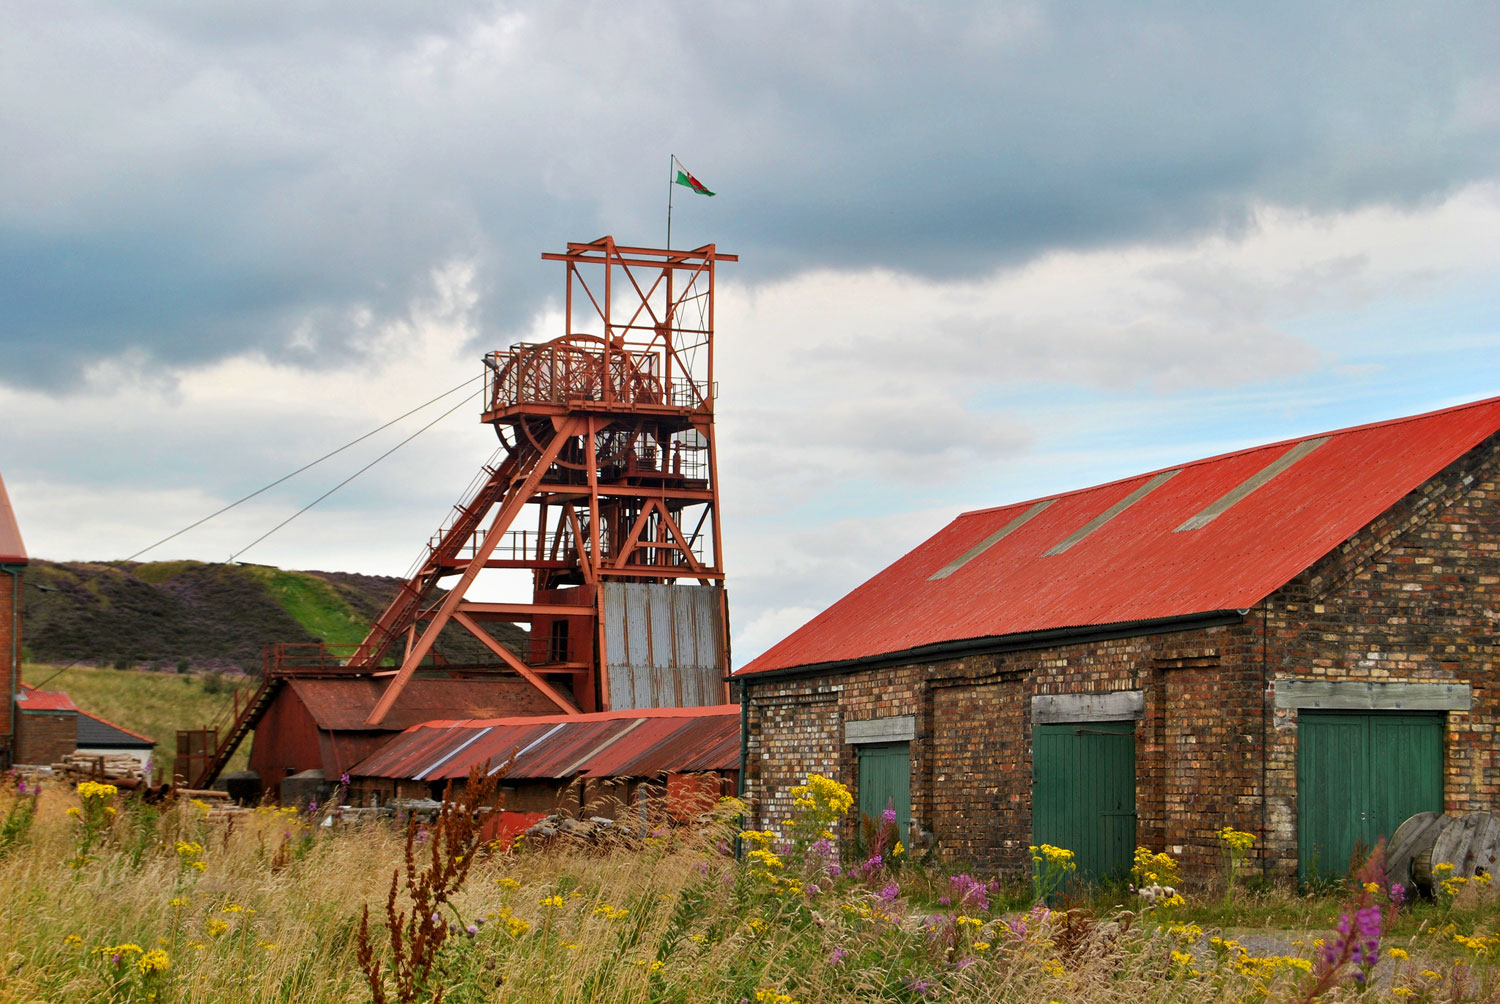 Britain's best places to see: Mines and mining Museums